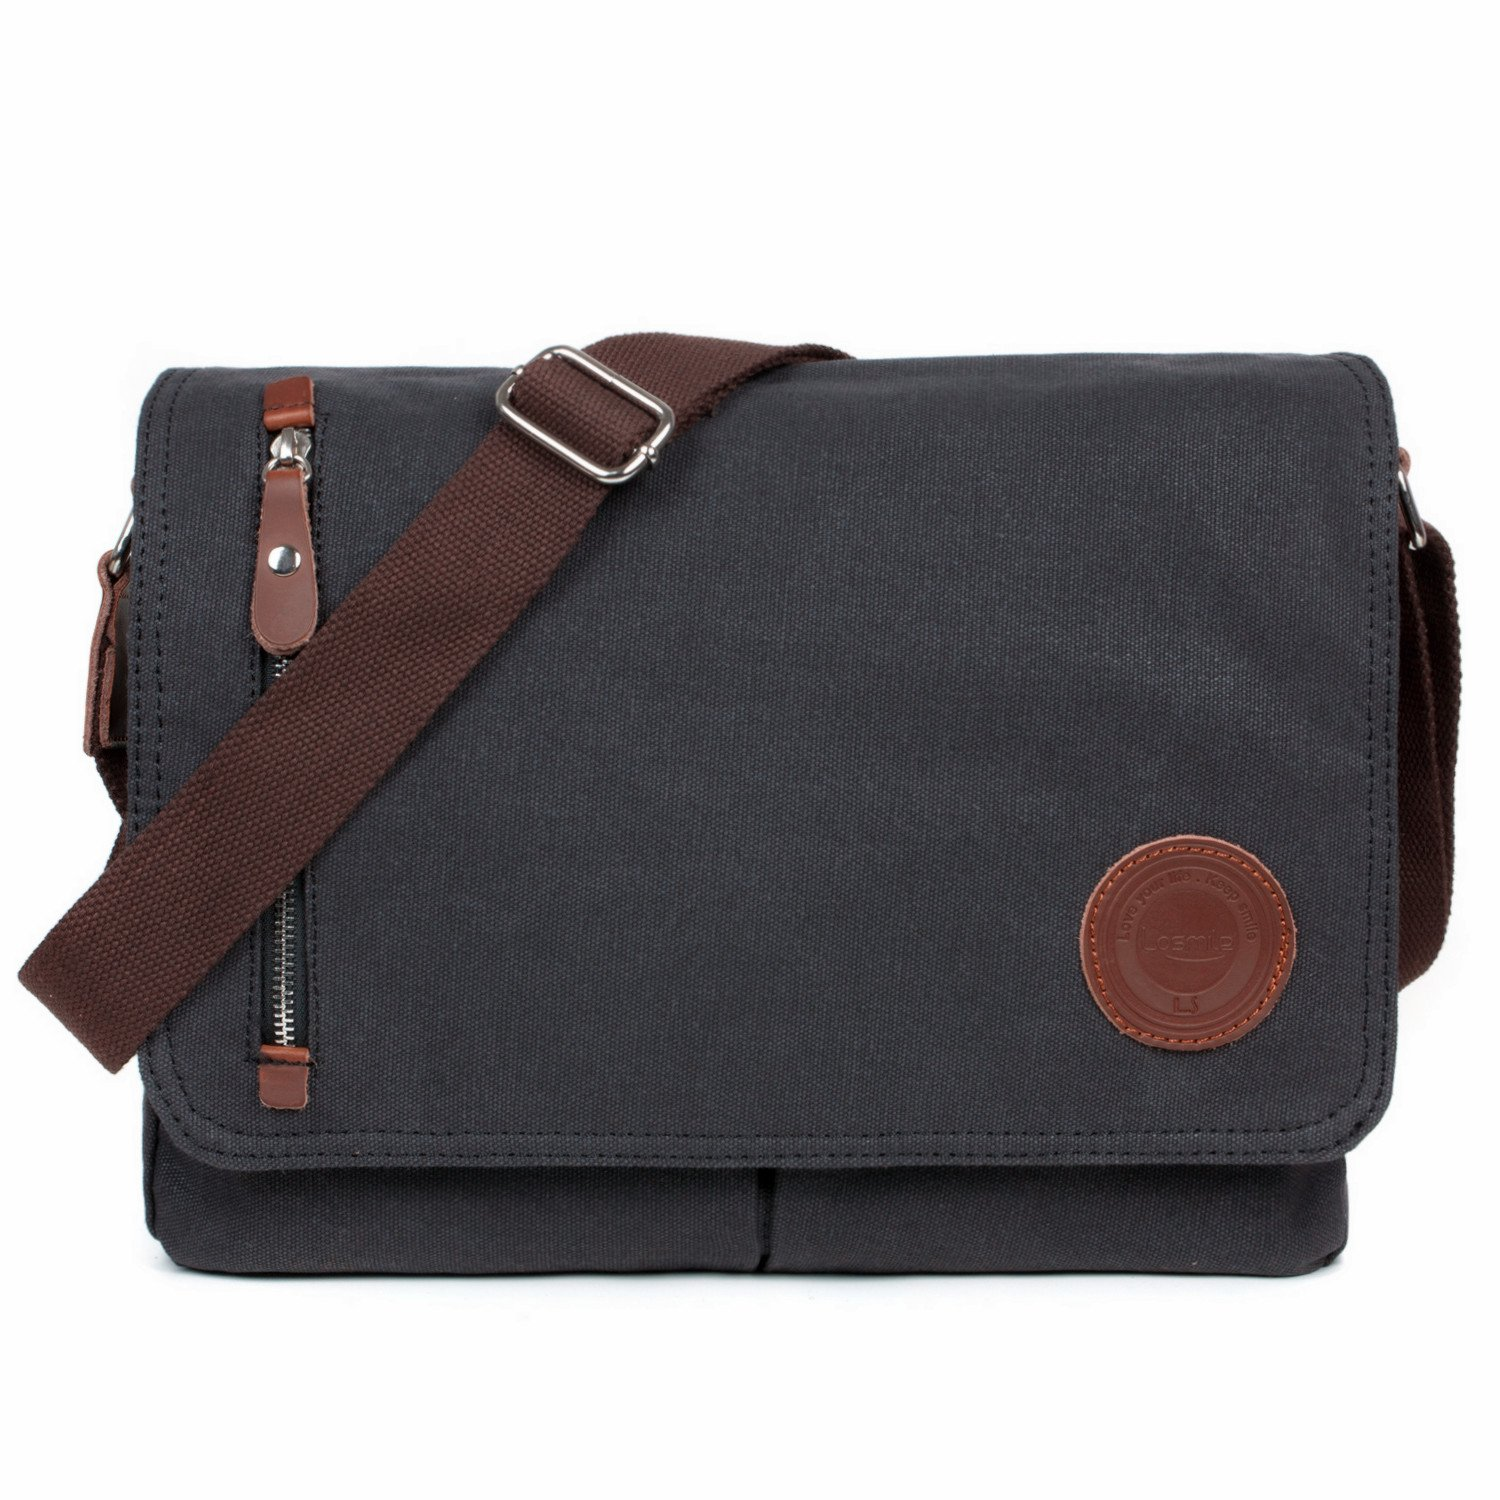 LOSMILE Mens Canvas Messenger Shoulder Bag. f33c59533a18f